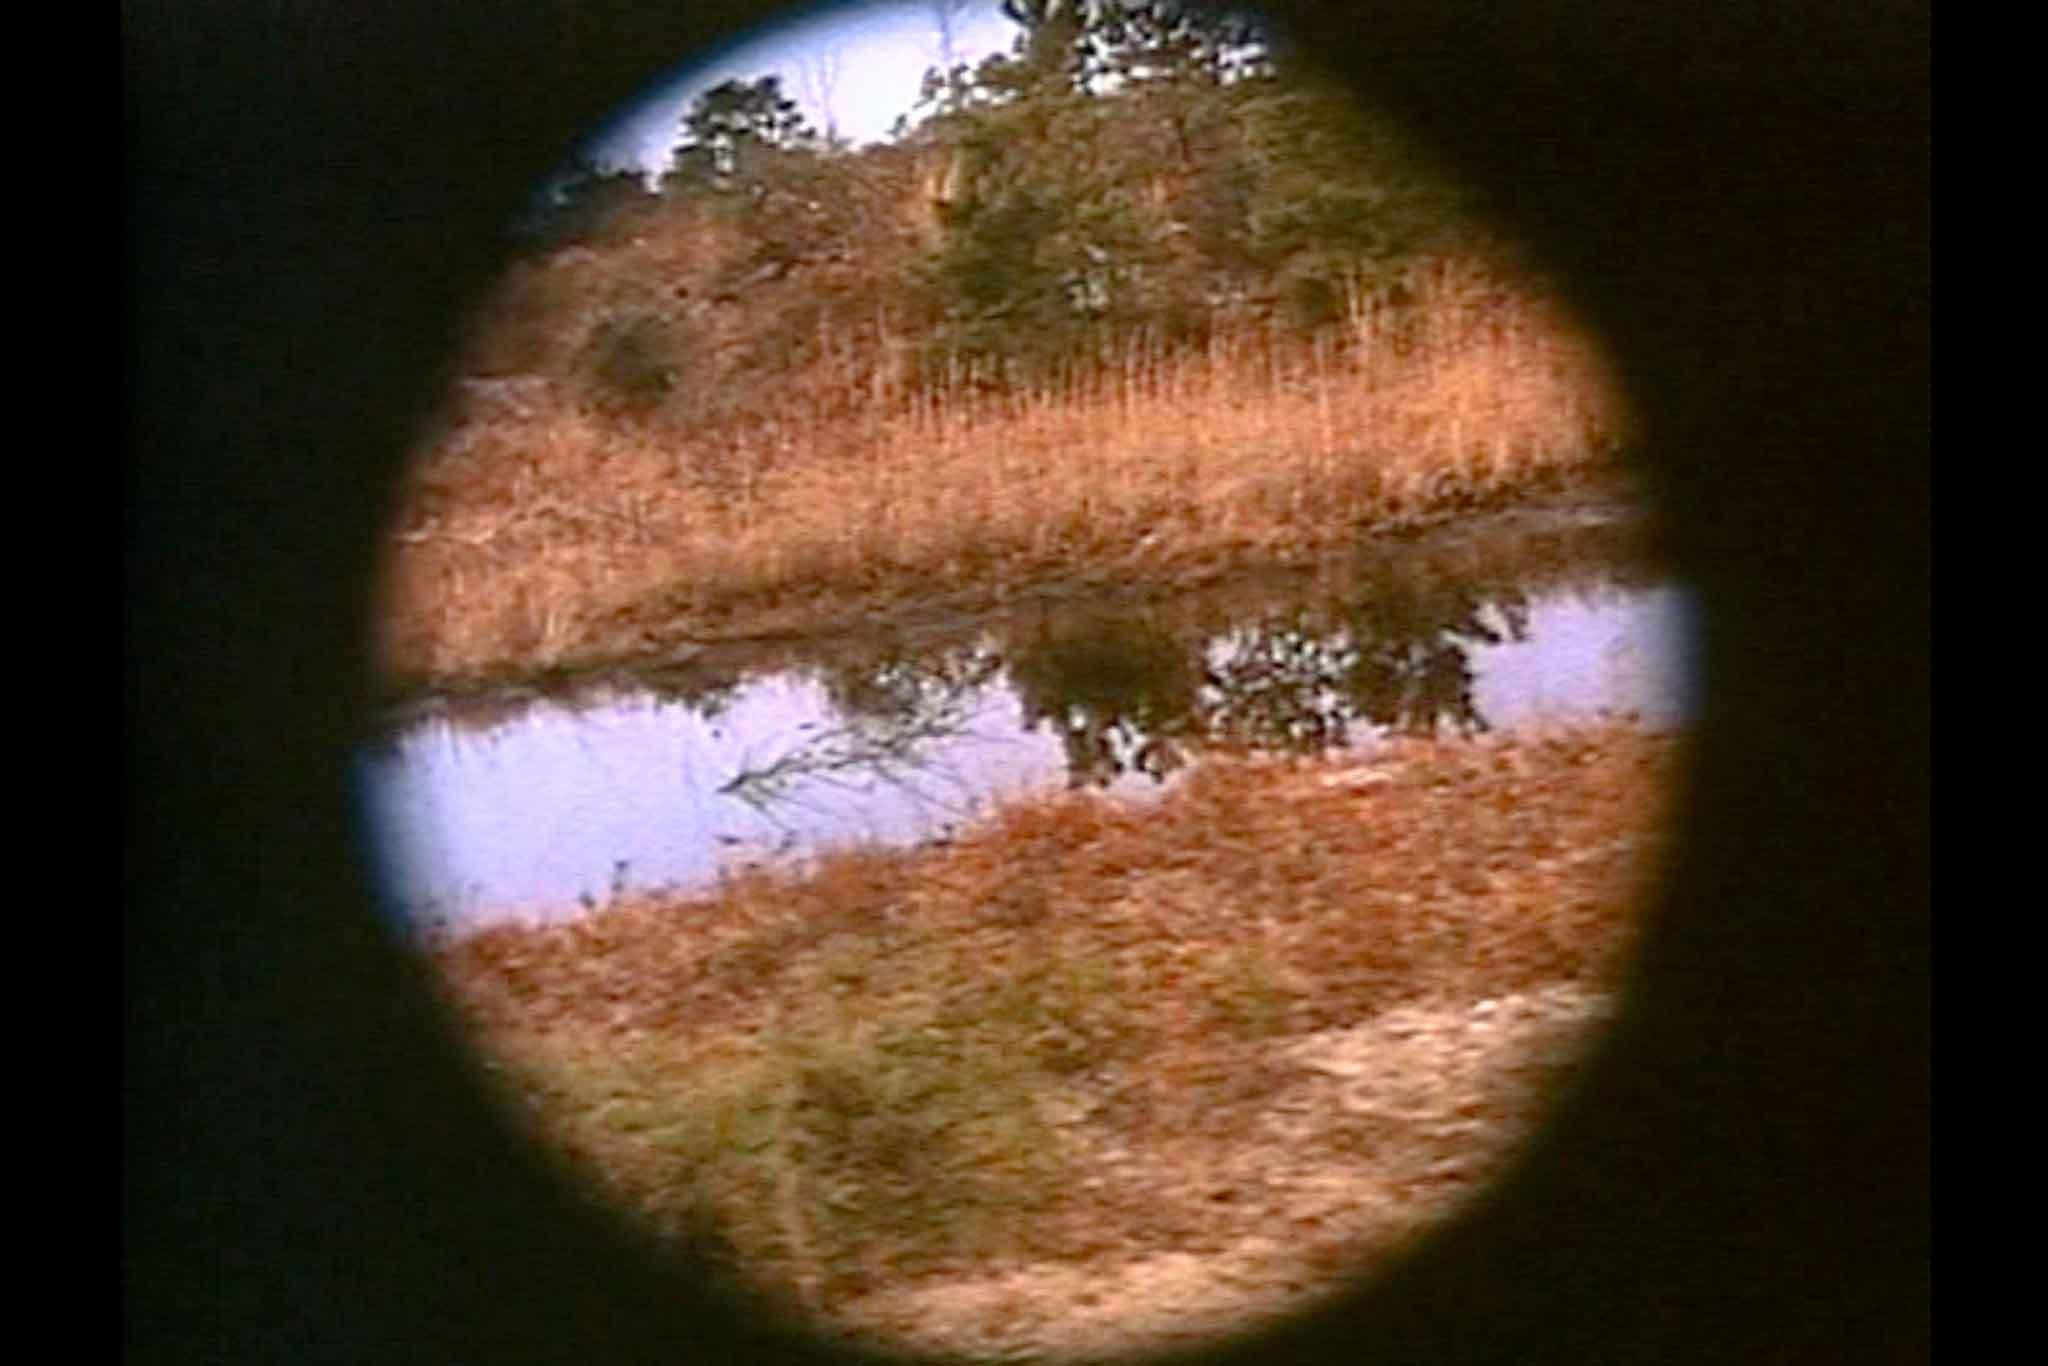 A still image from the film Pine Barrens